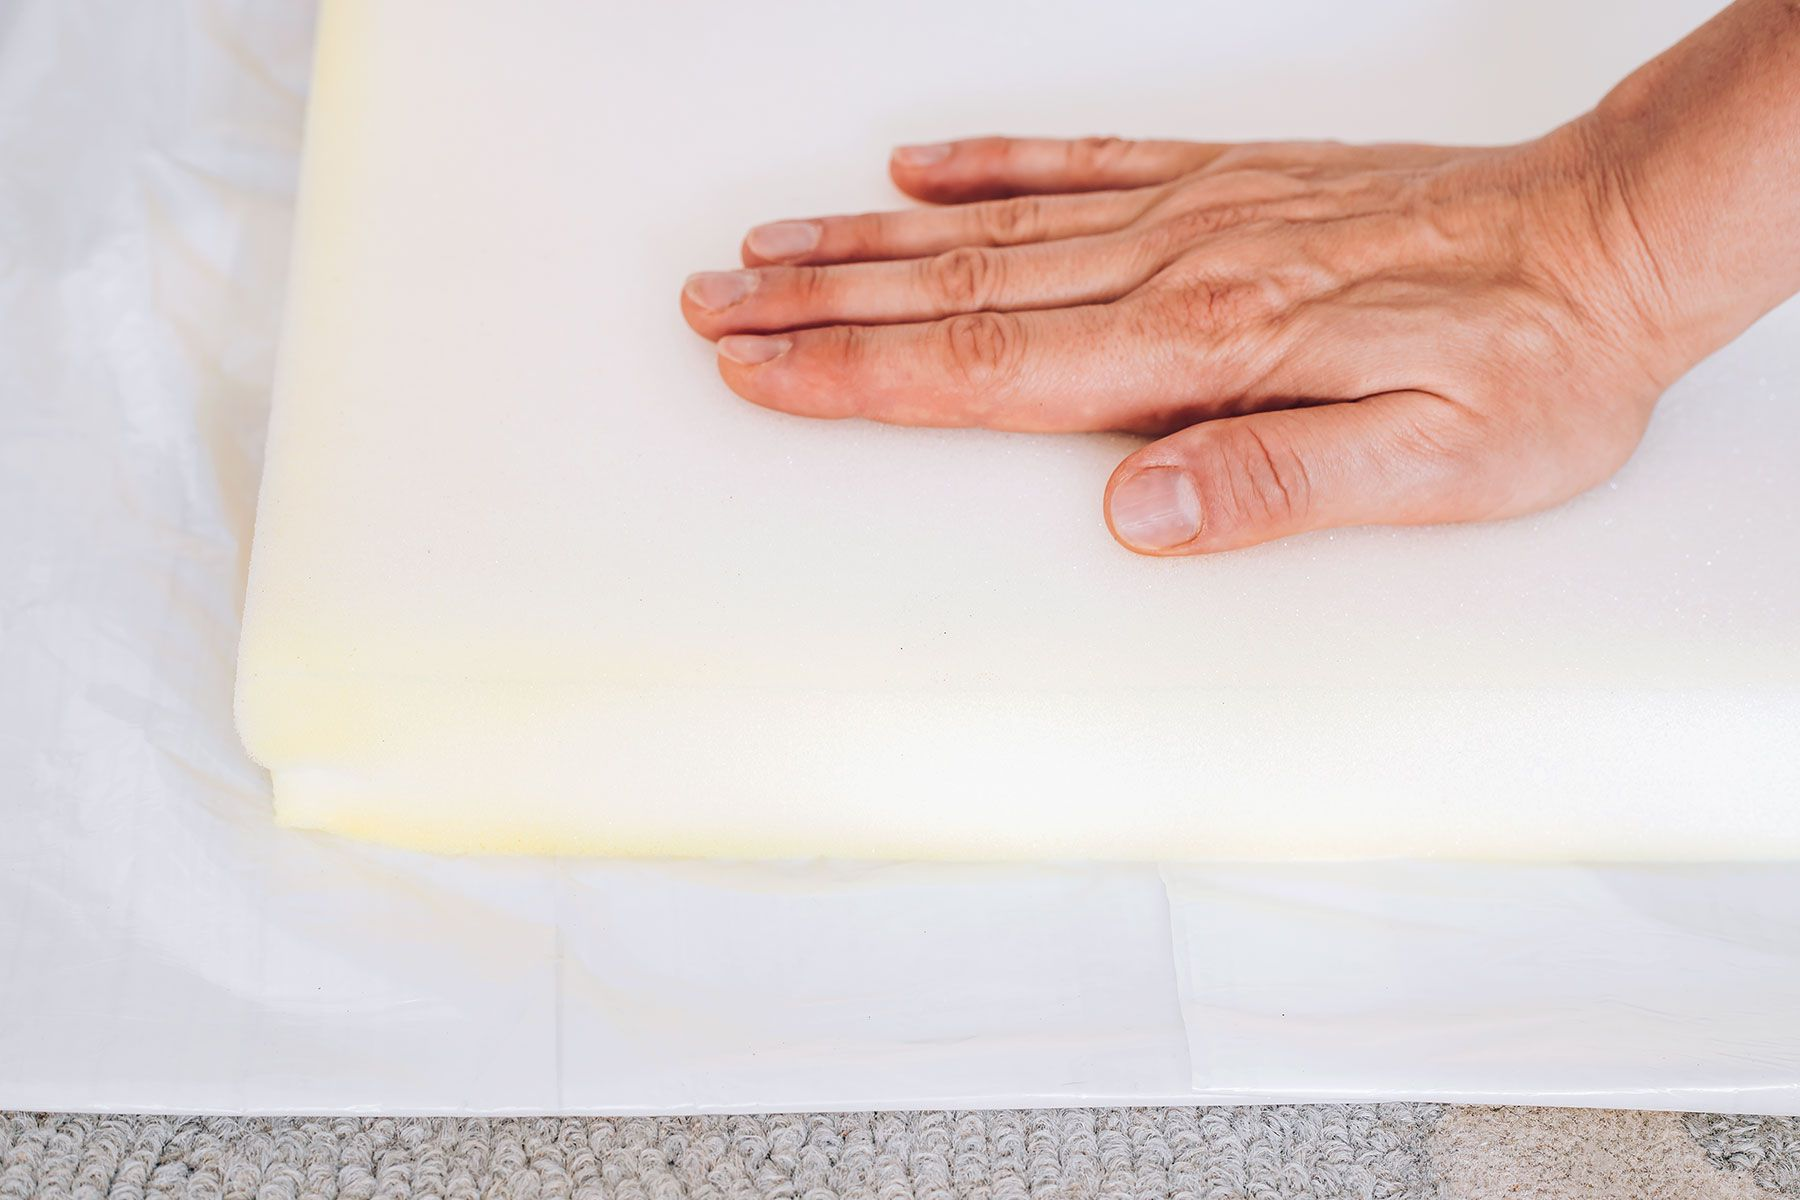 Foam mattress pad removed from bed topper and placed on white tarp